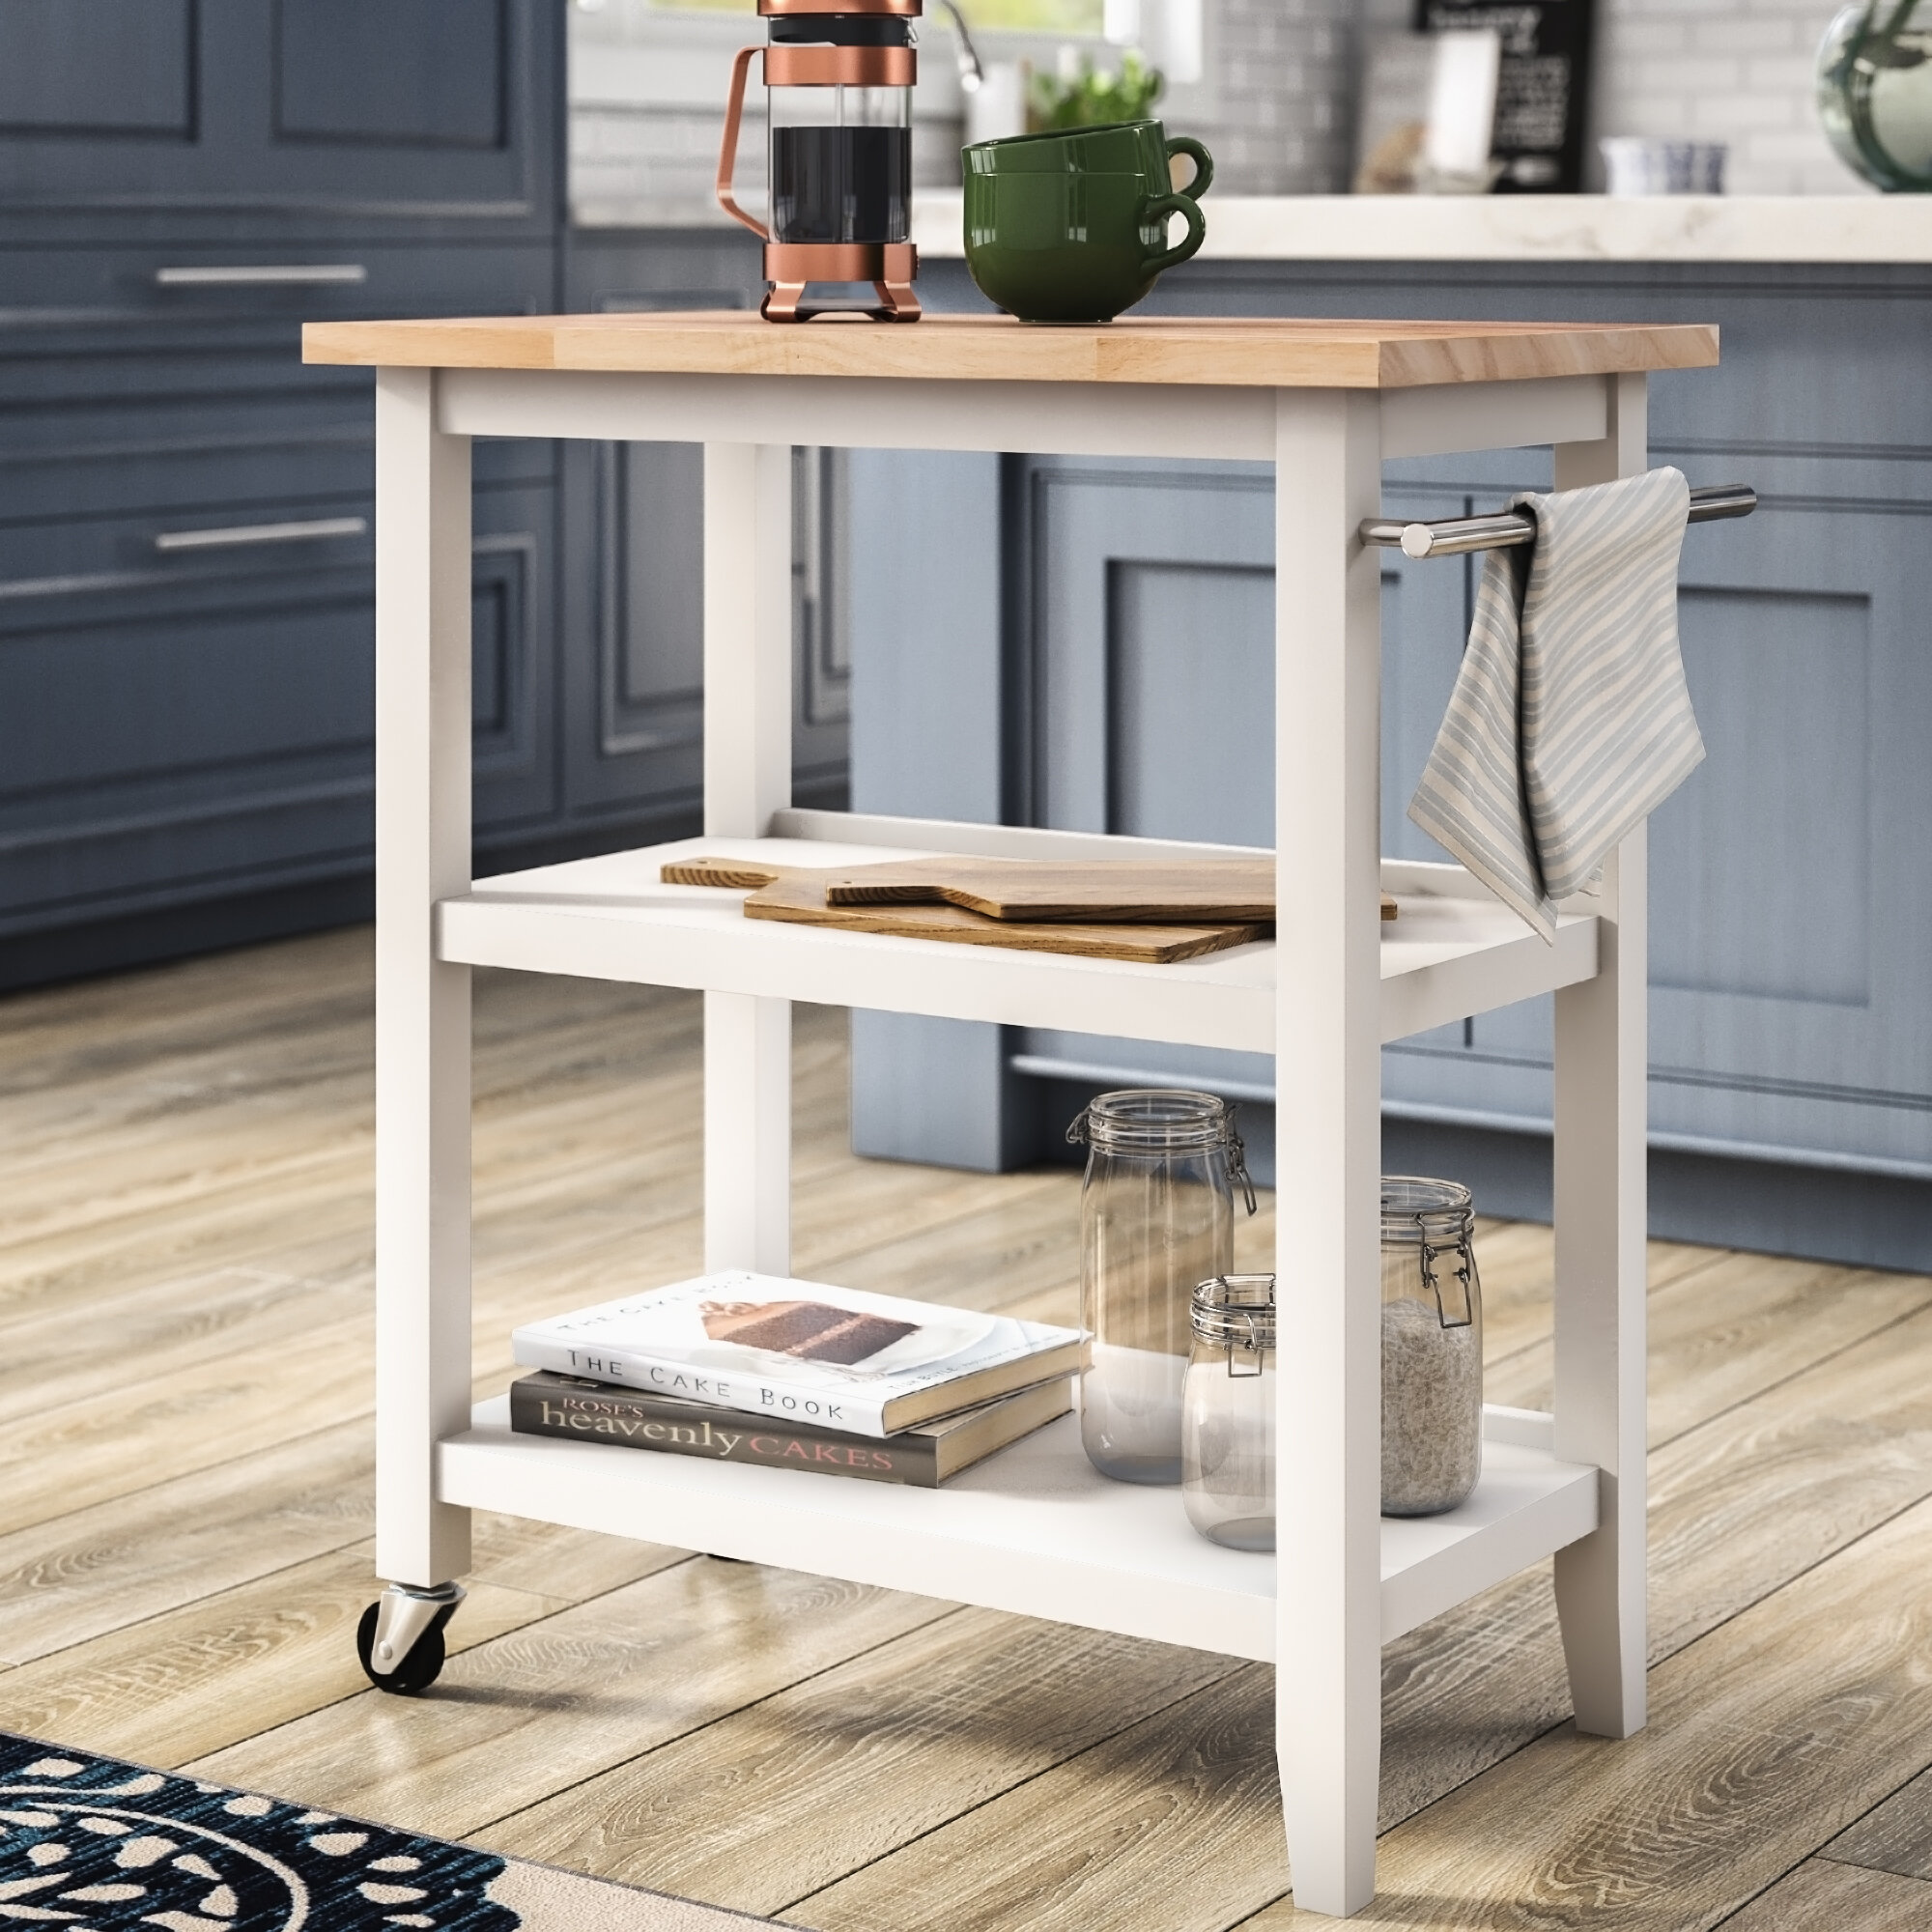 Raabe Kitchen Cart